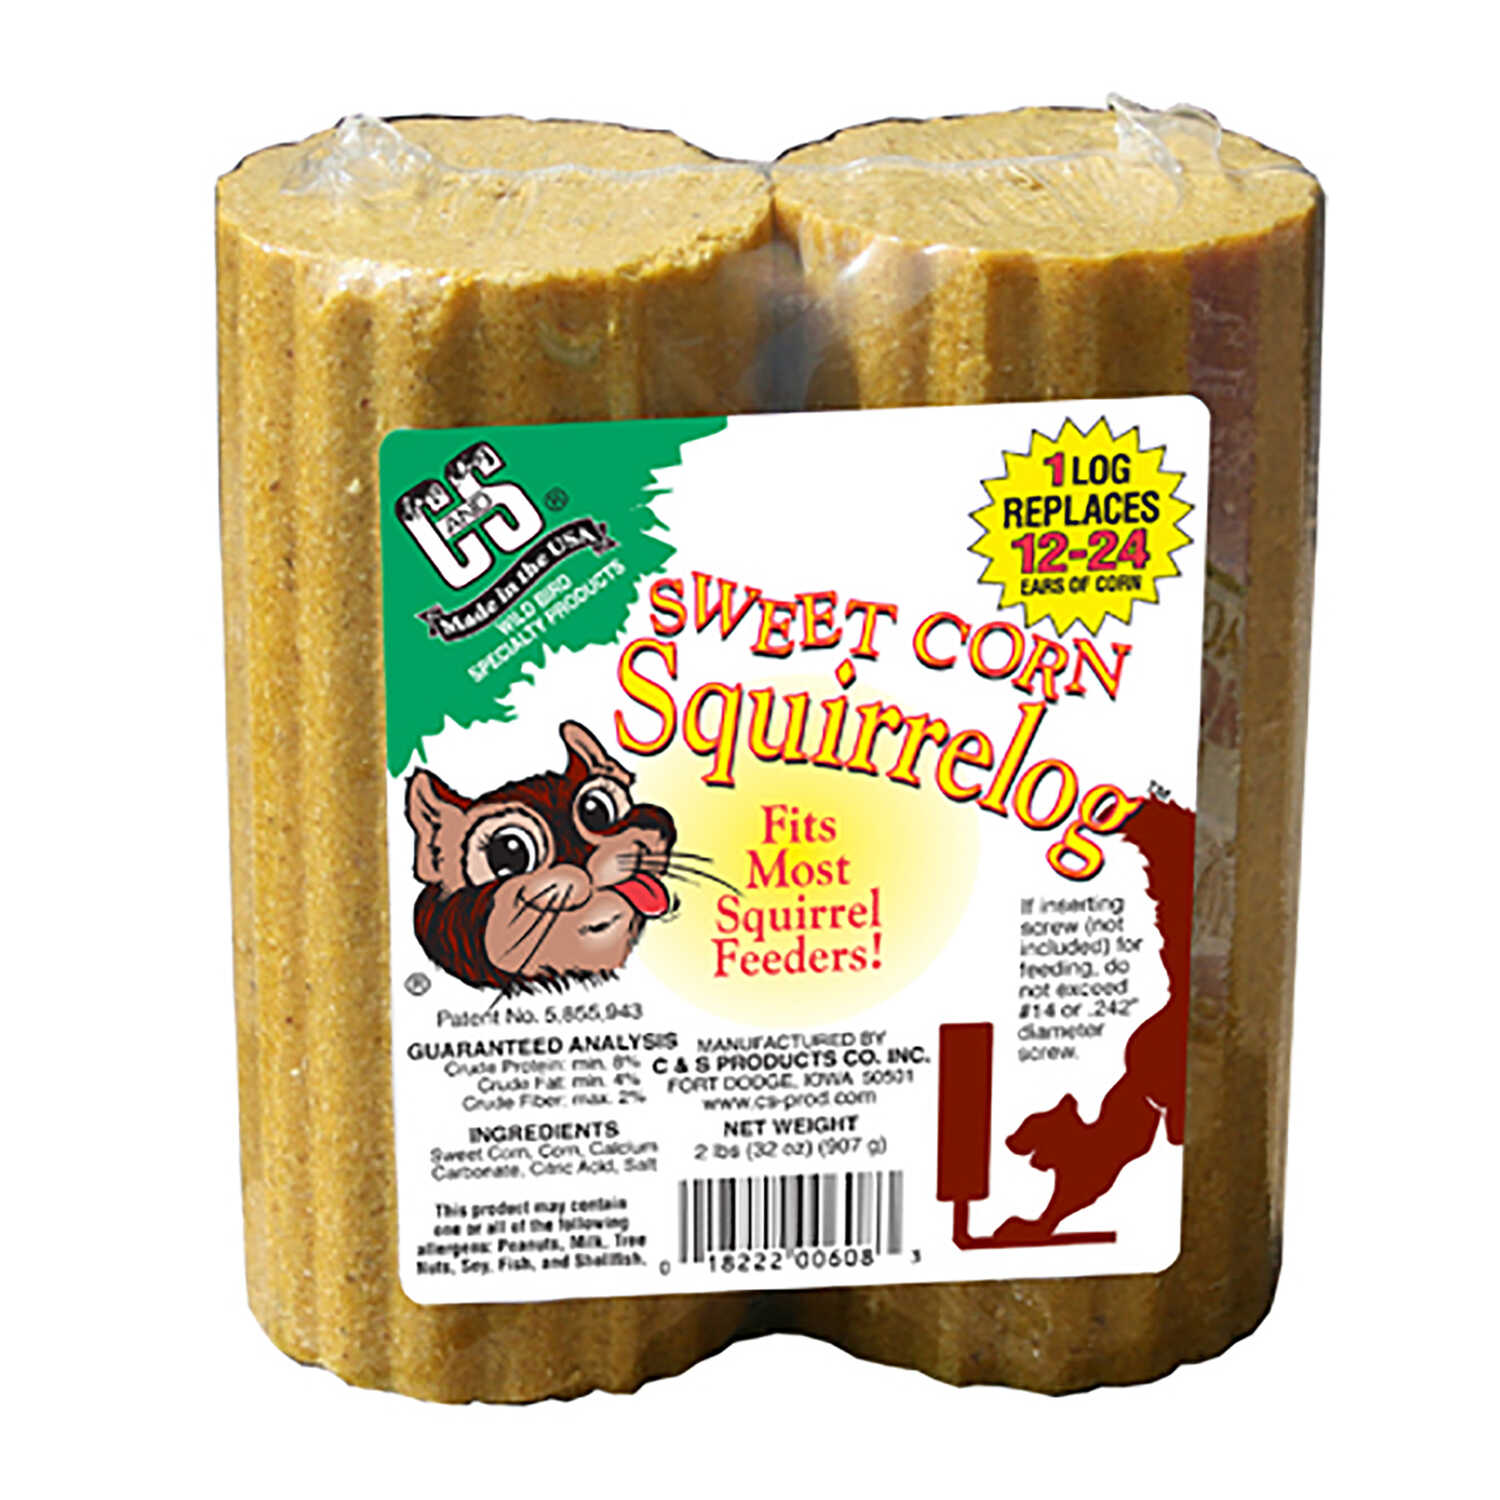 C&S Products  Squirrelog  Wildlife  Squirrel and Critter Food  Corn  32 oz.